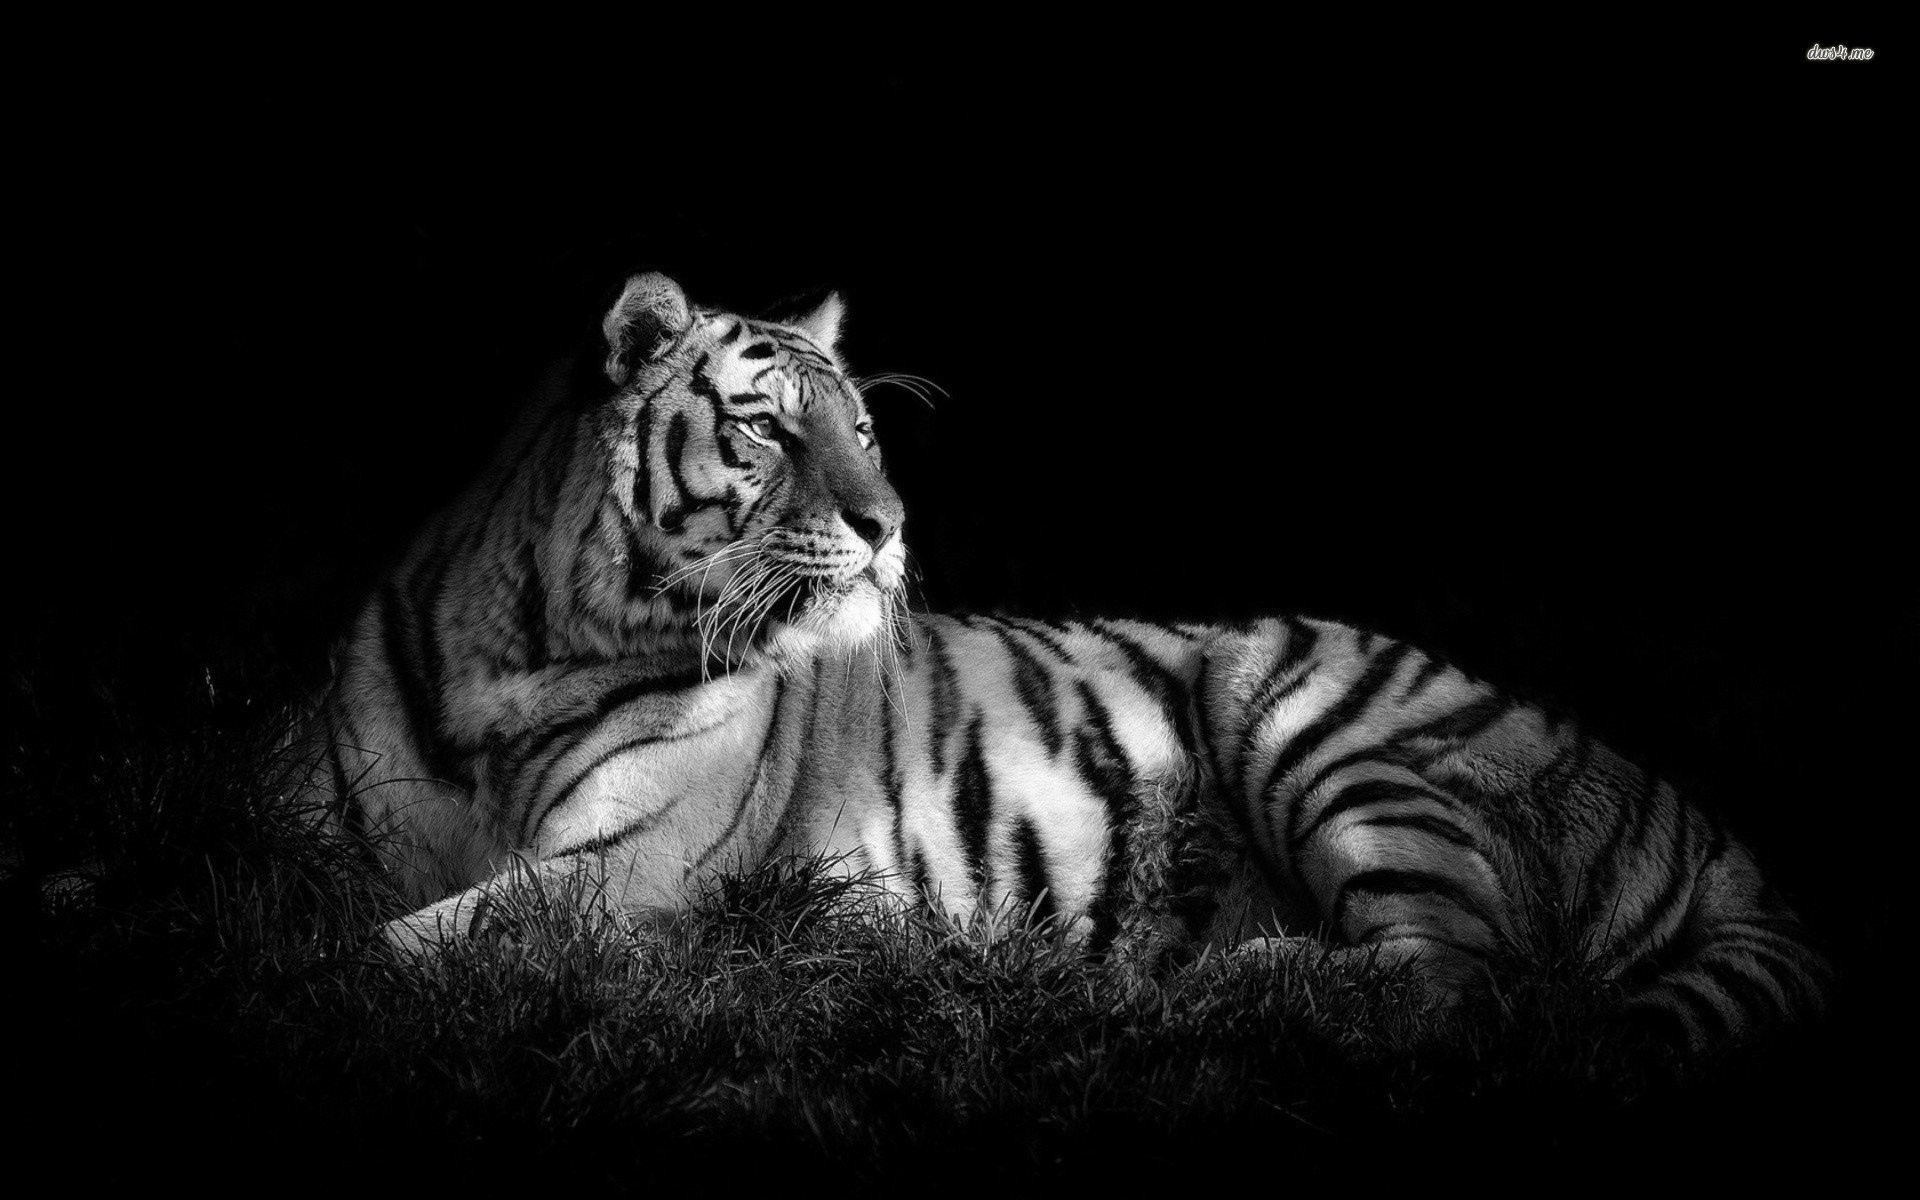 black and white tiger wallpaper (60+ images)